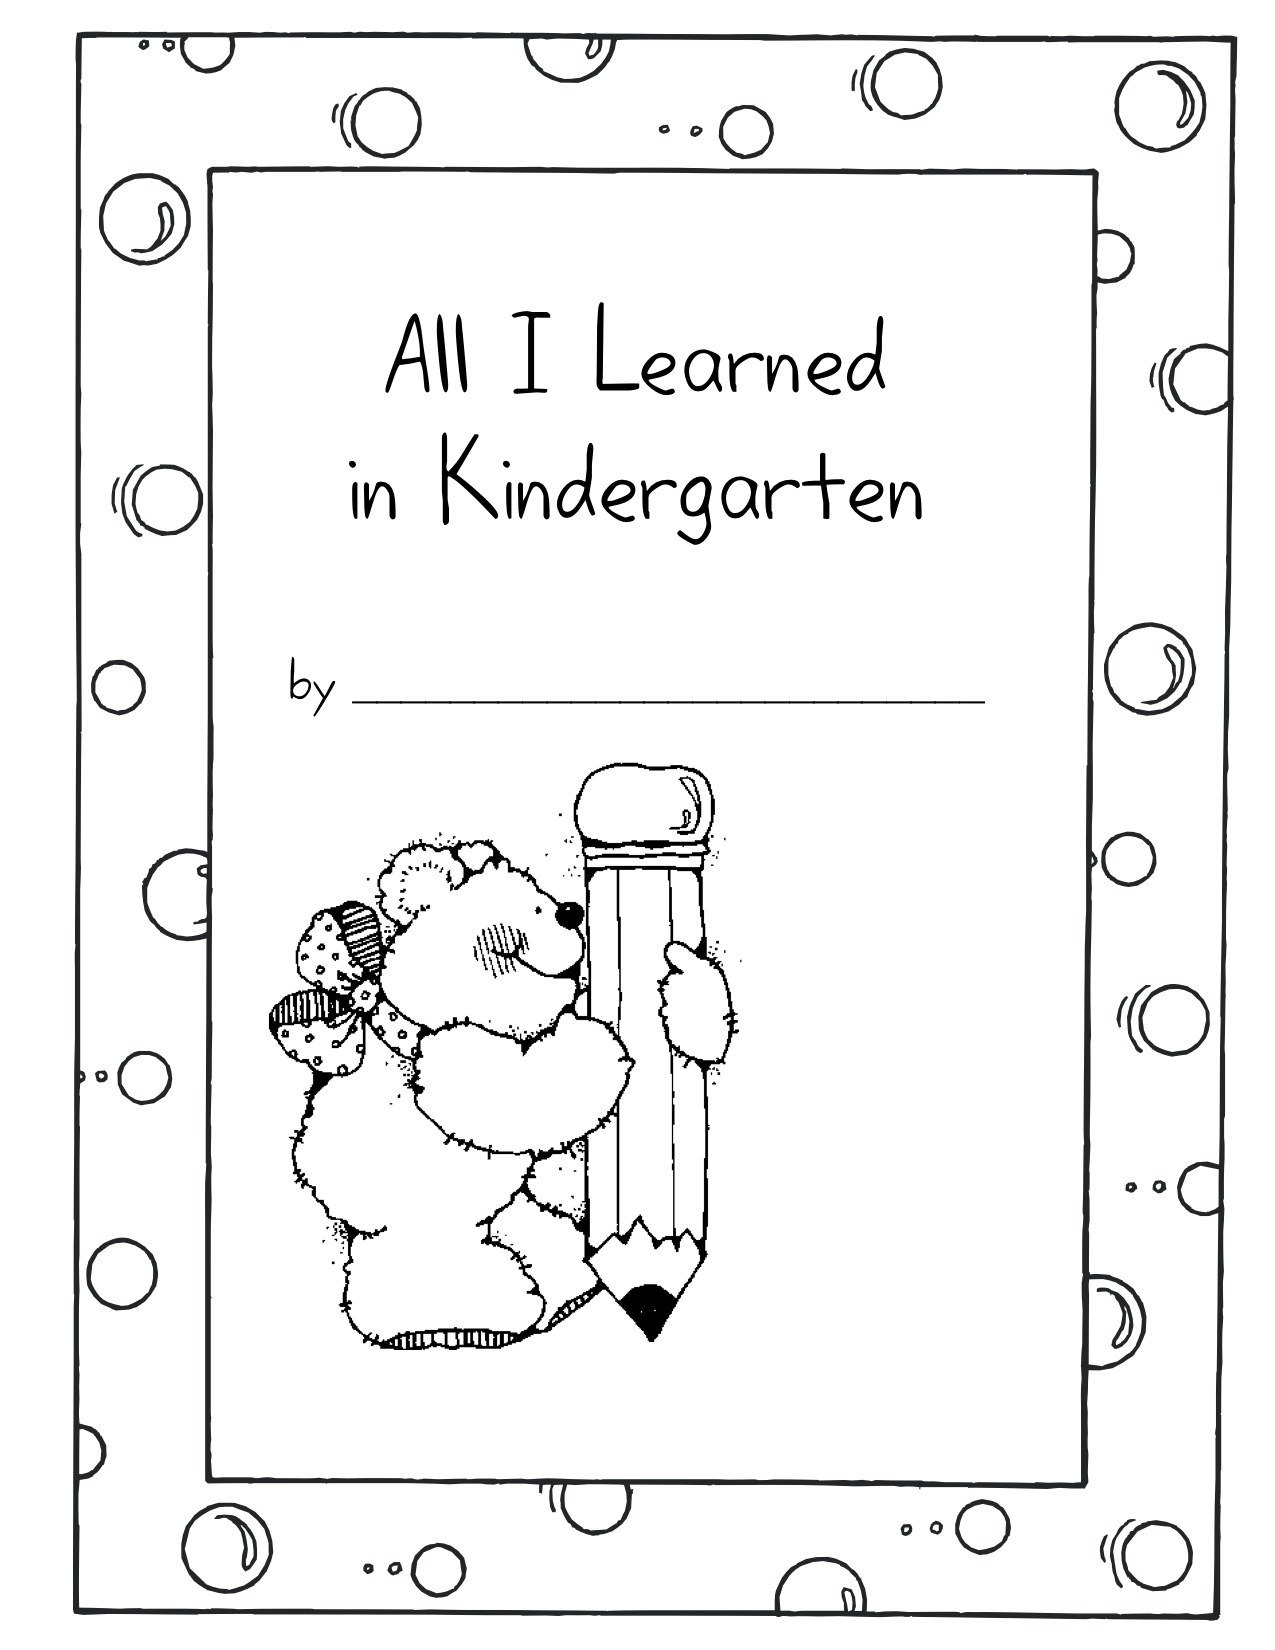 All I Learned In Kindergarten